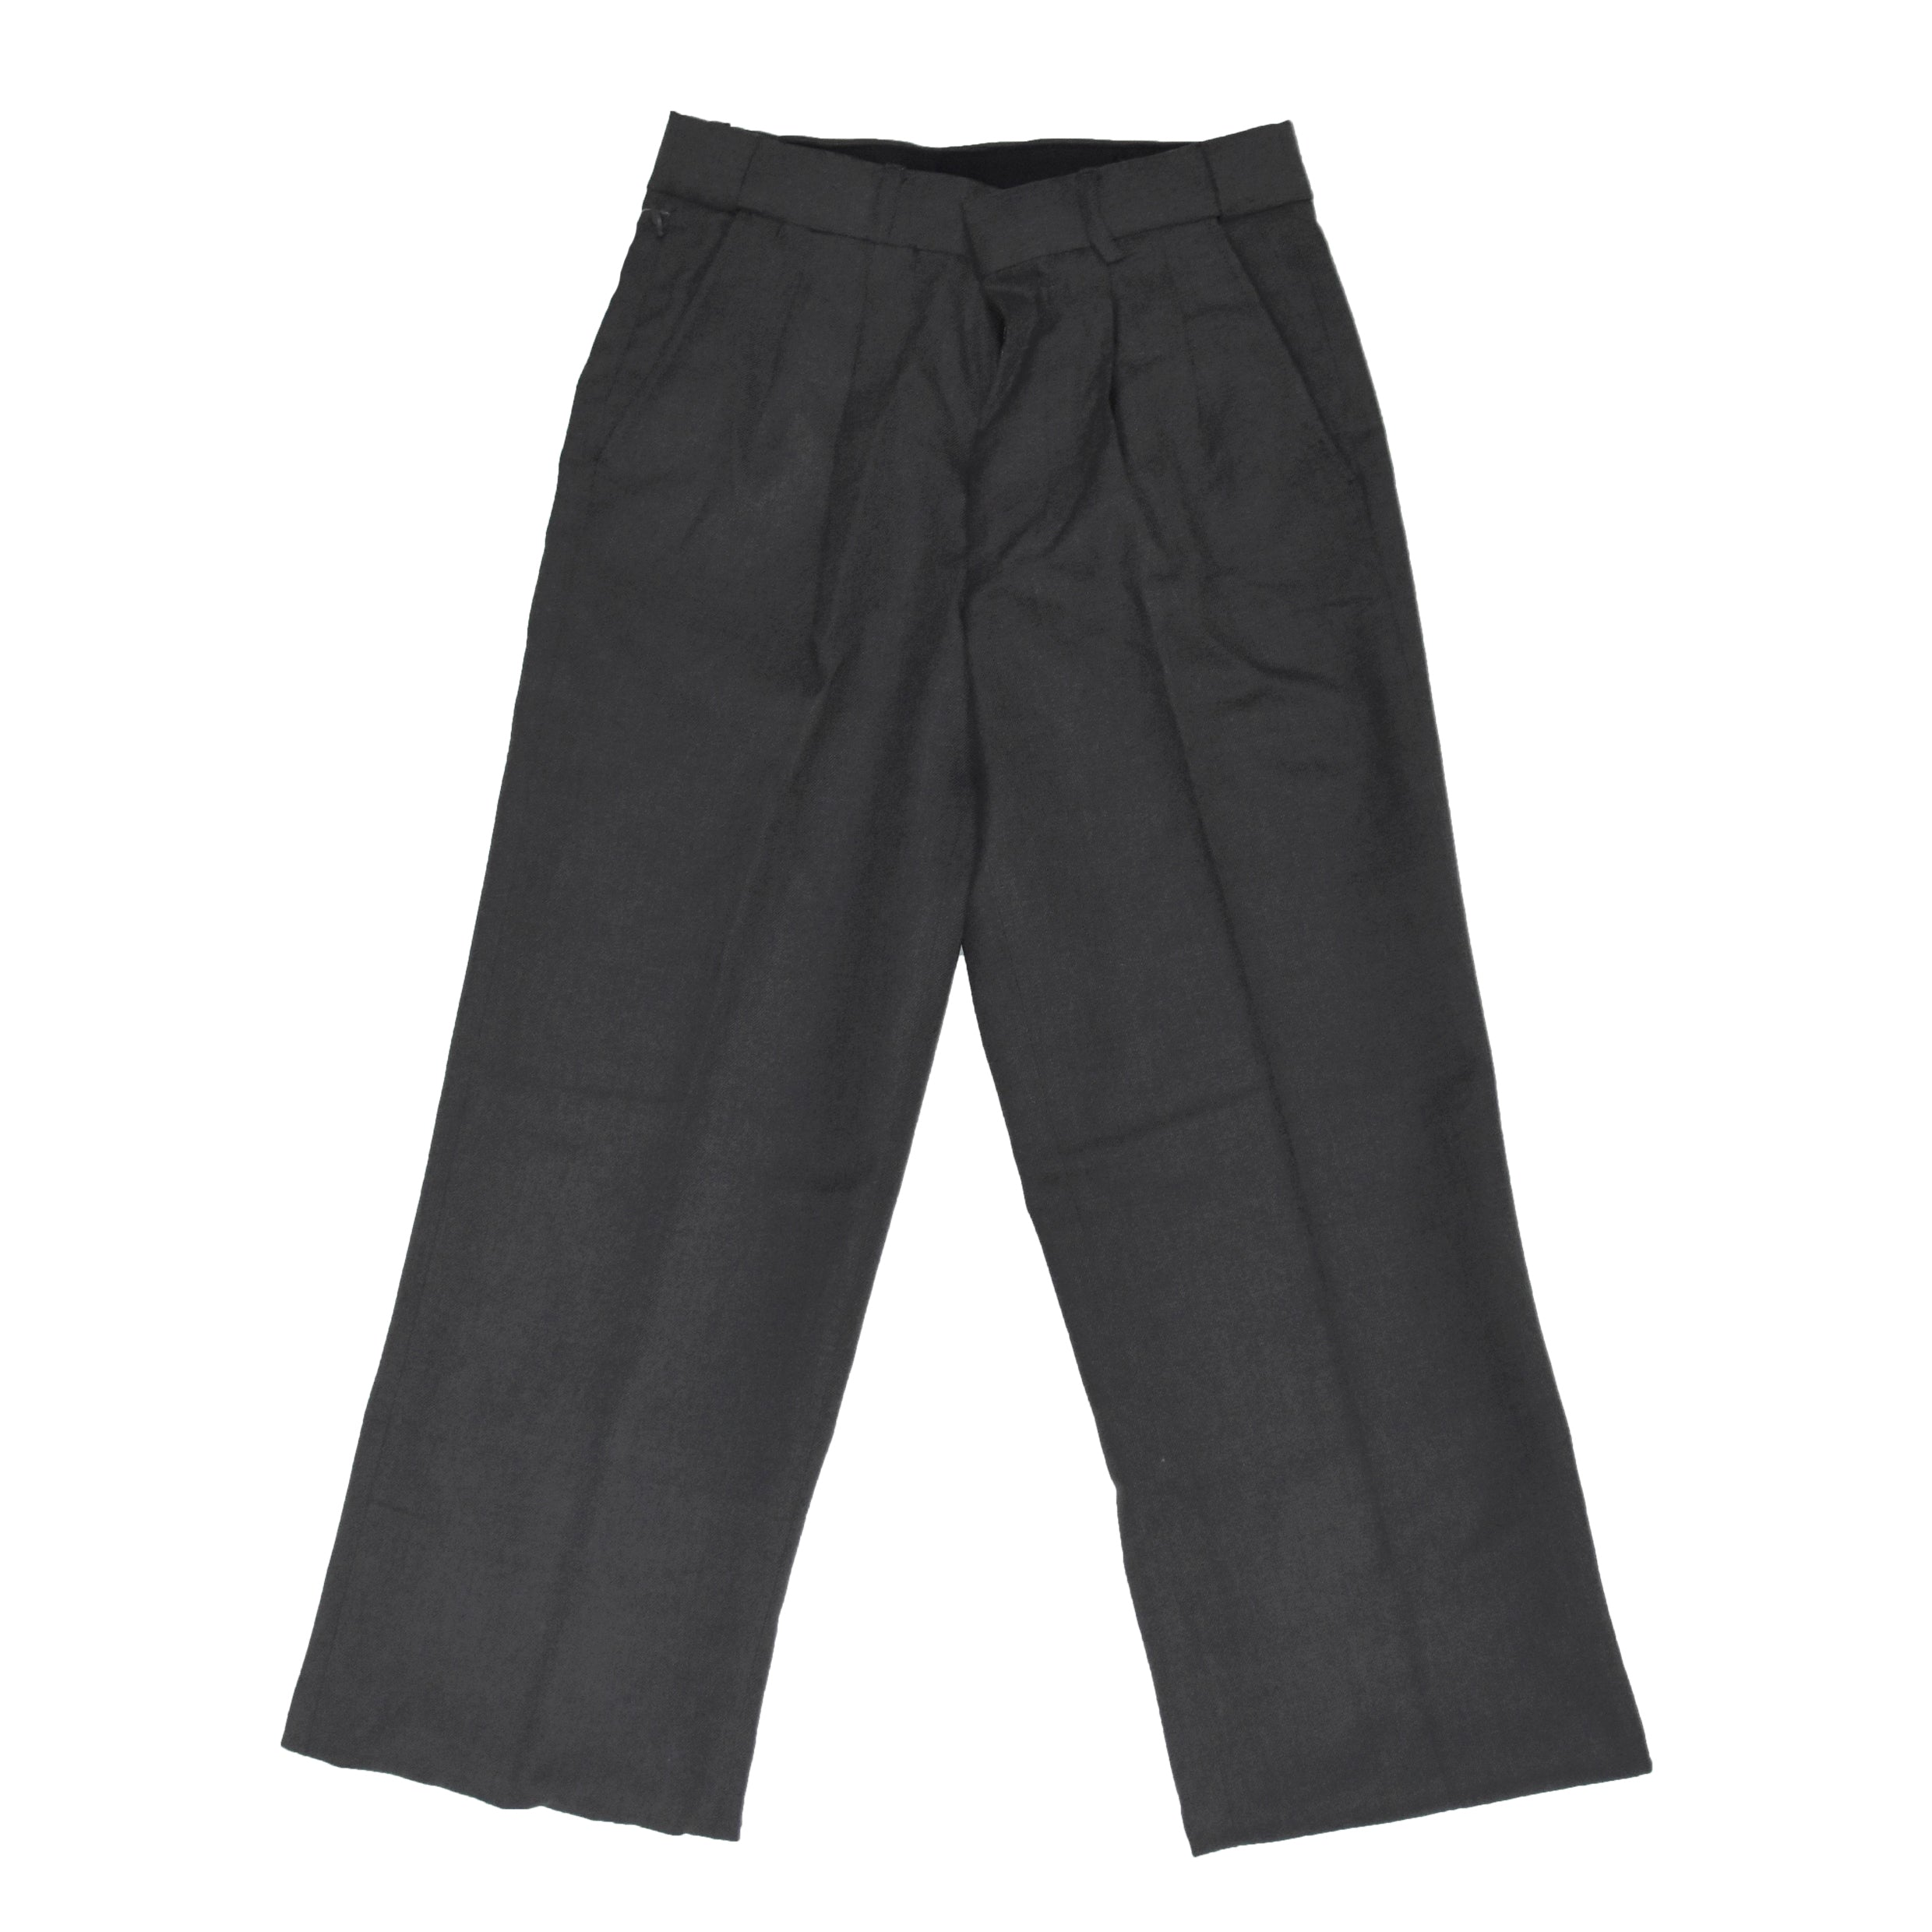 Boys Pants (Tailored Middle/Senior School)